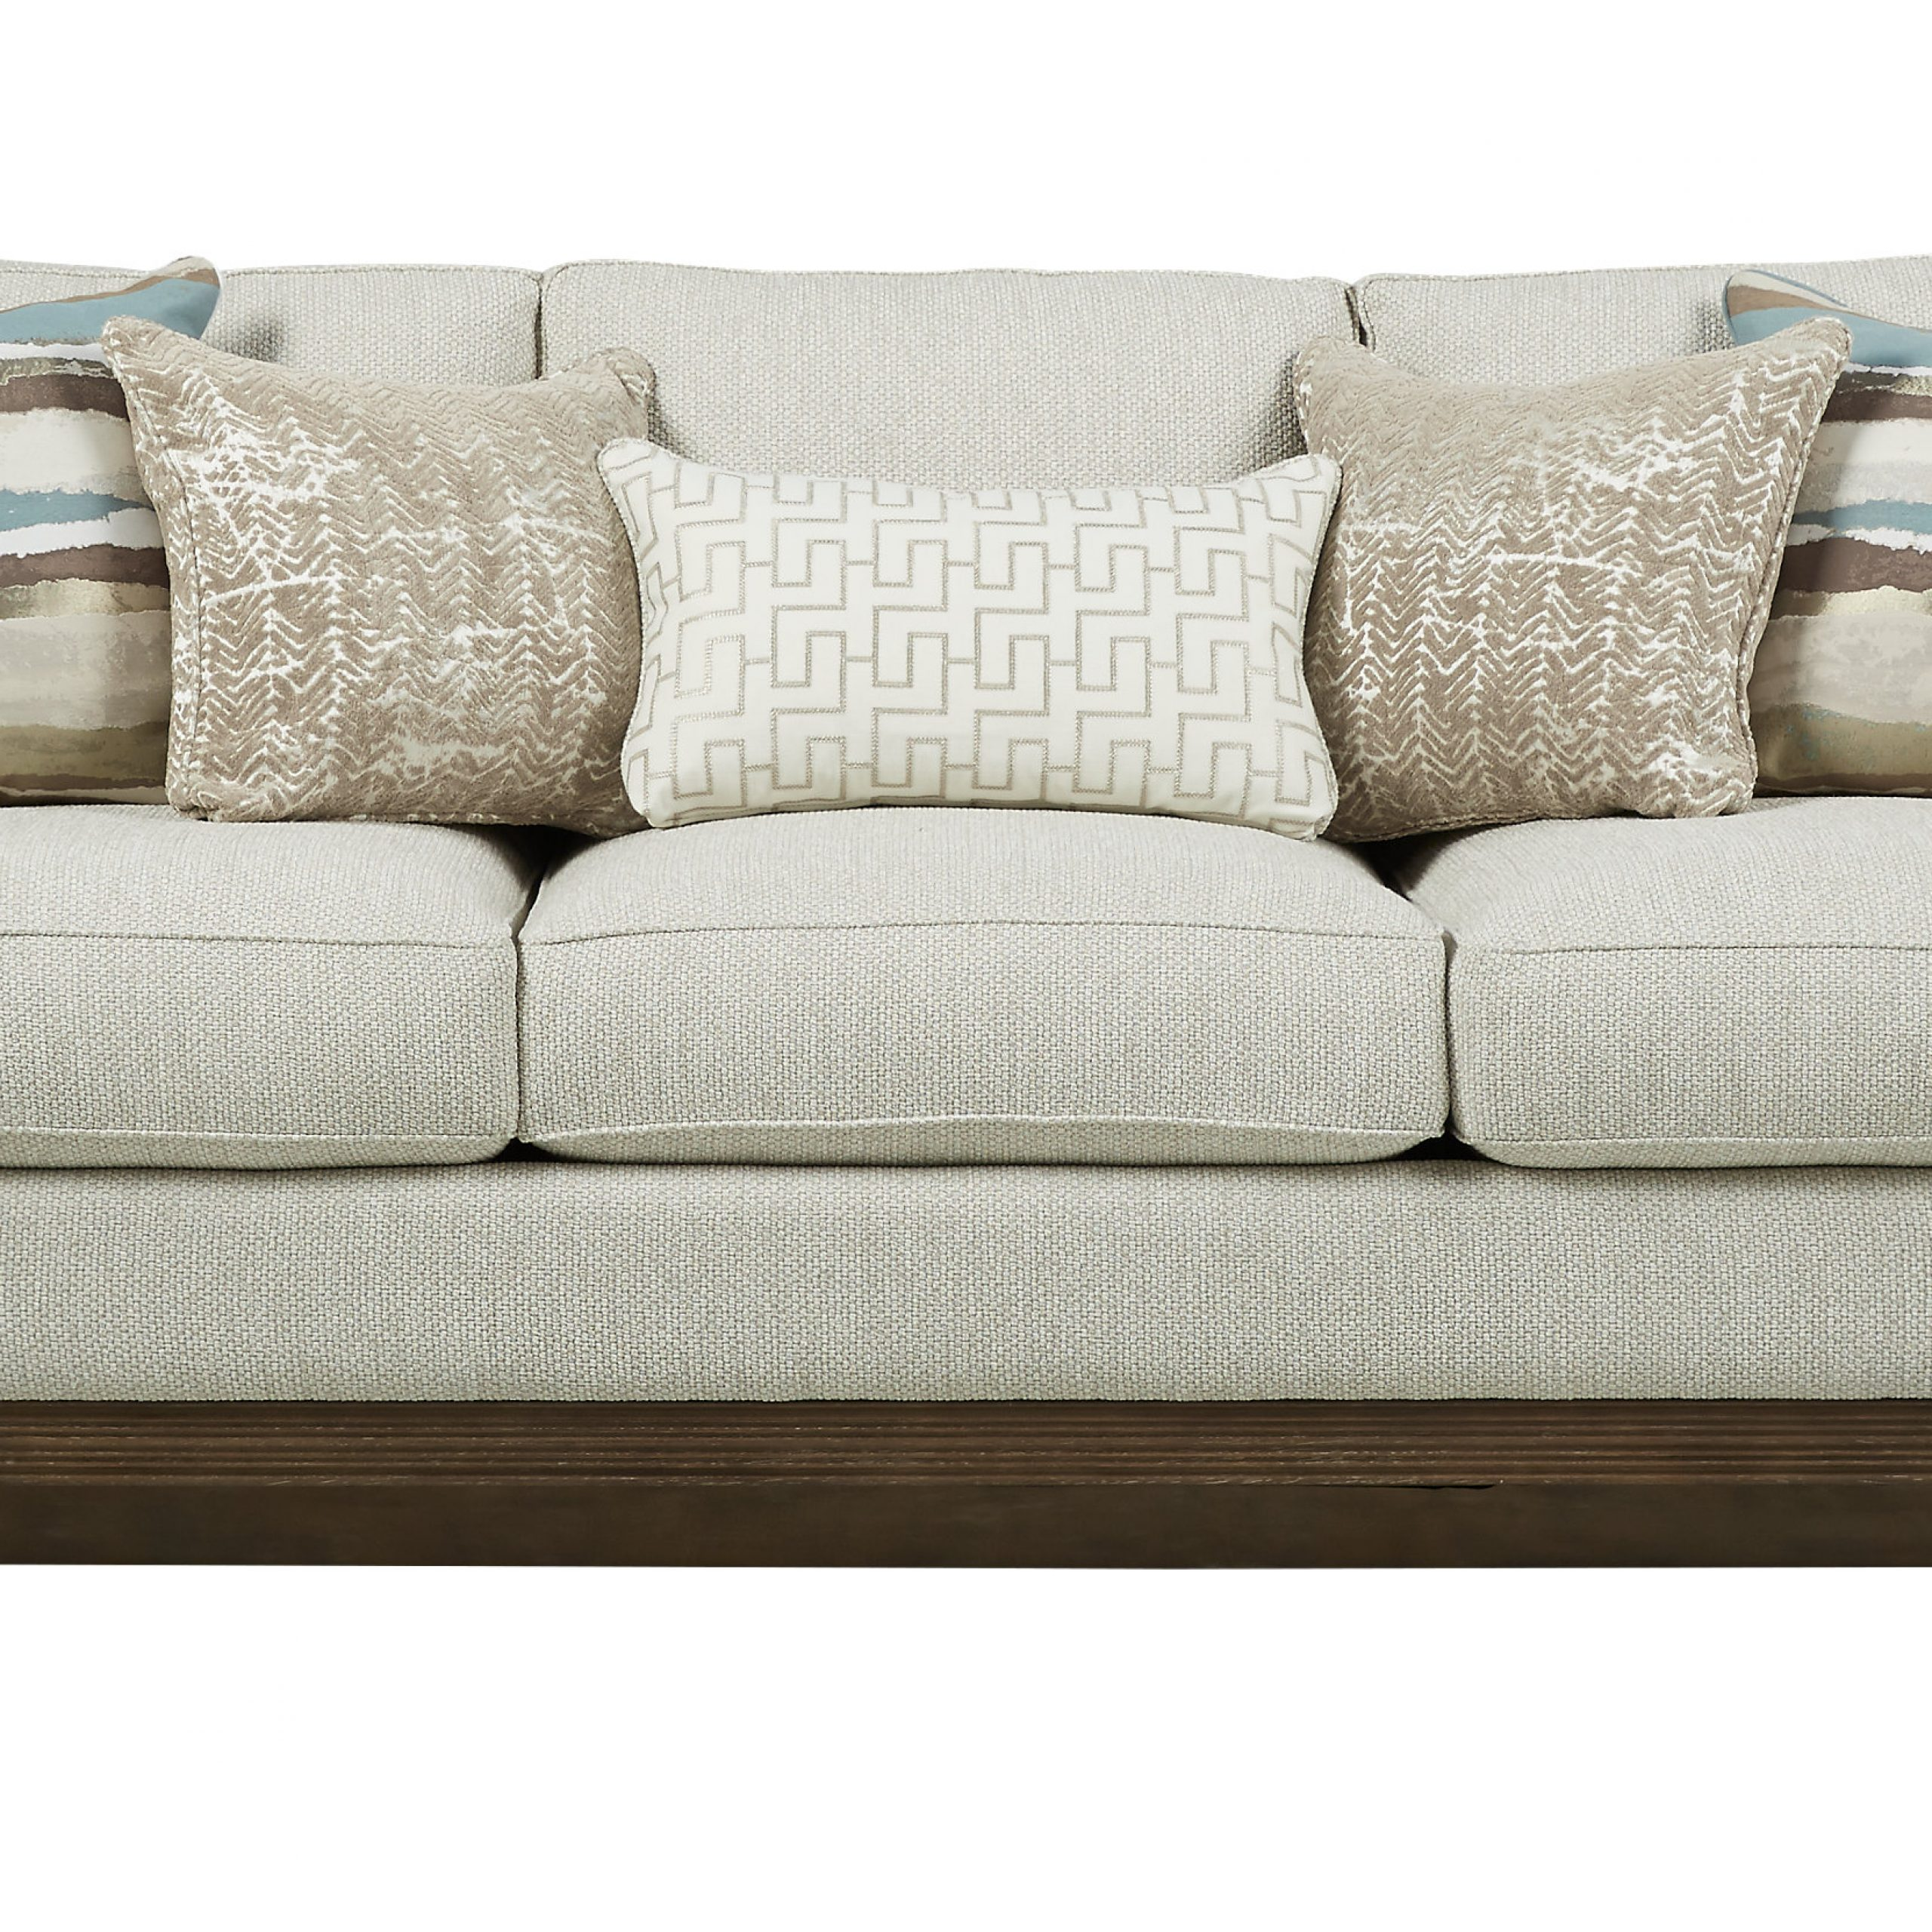 Leather Beige Sofa Cindy Crawford Home Fancy Beige Leather Pertaining To Cindy Crawford Sofas (View 15 of 15)